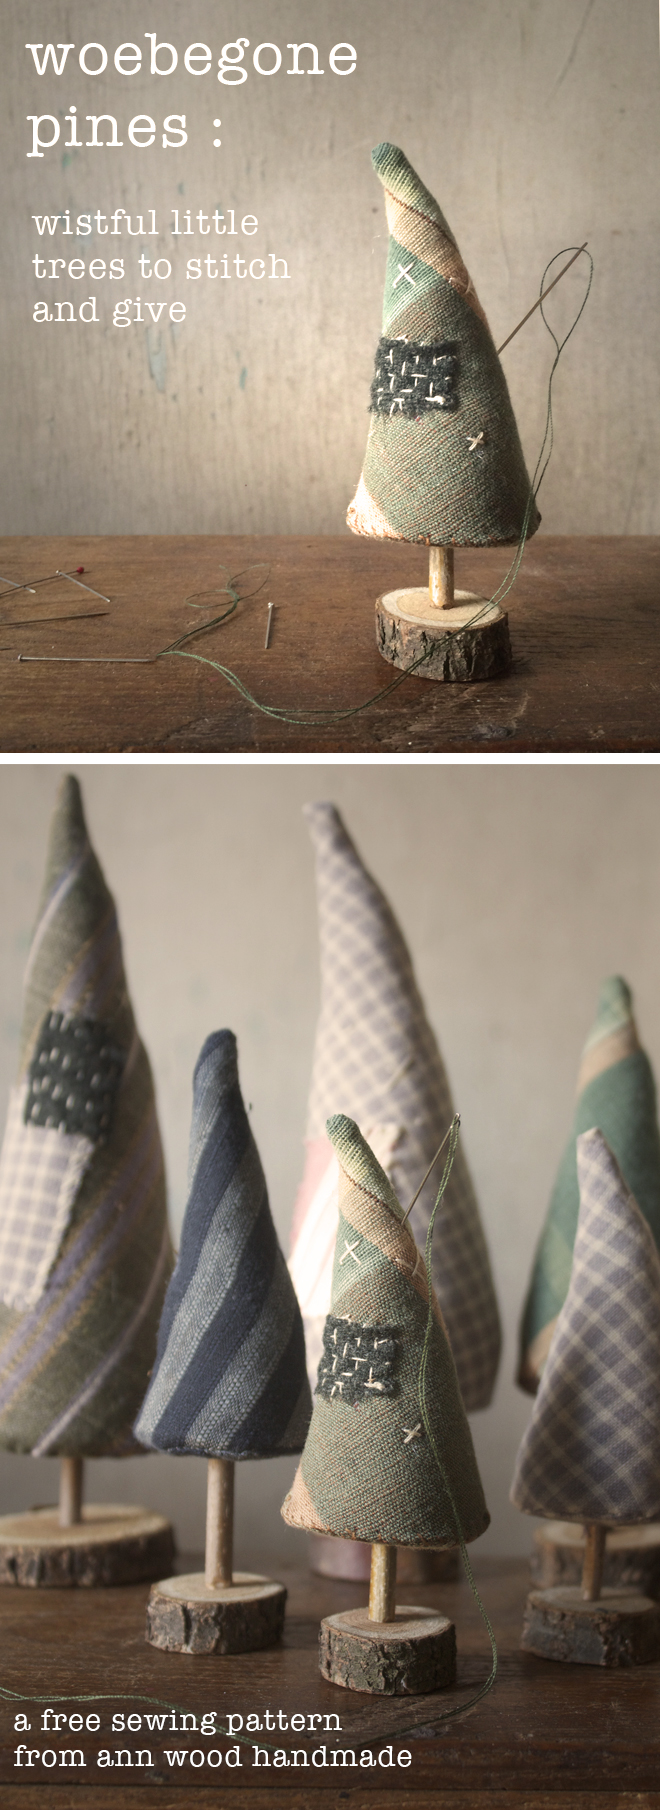 woebegone pines : a sewing pattern